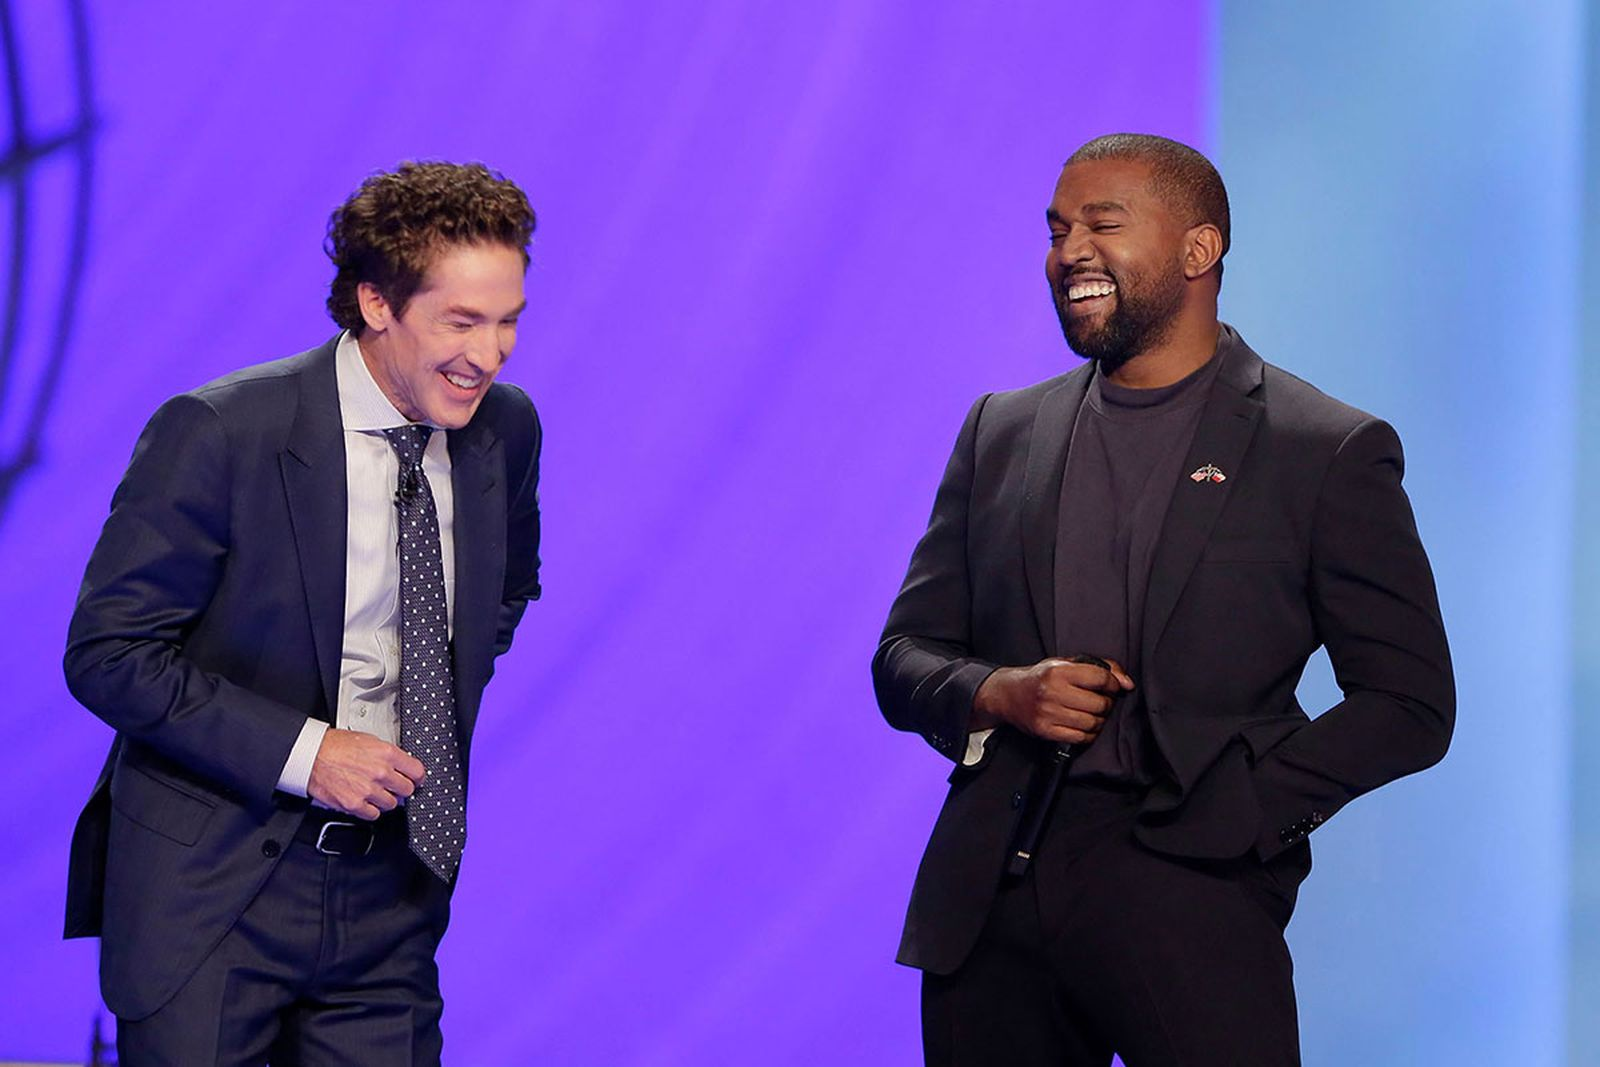 Kanye West and Joel Osteen